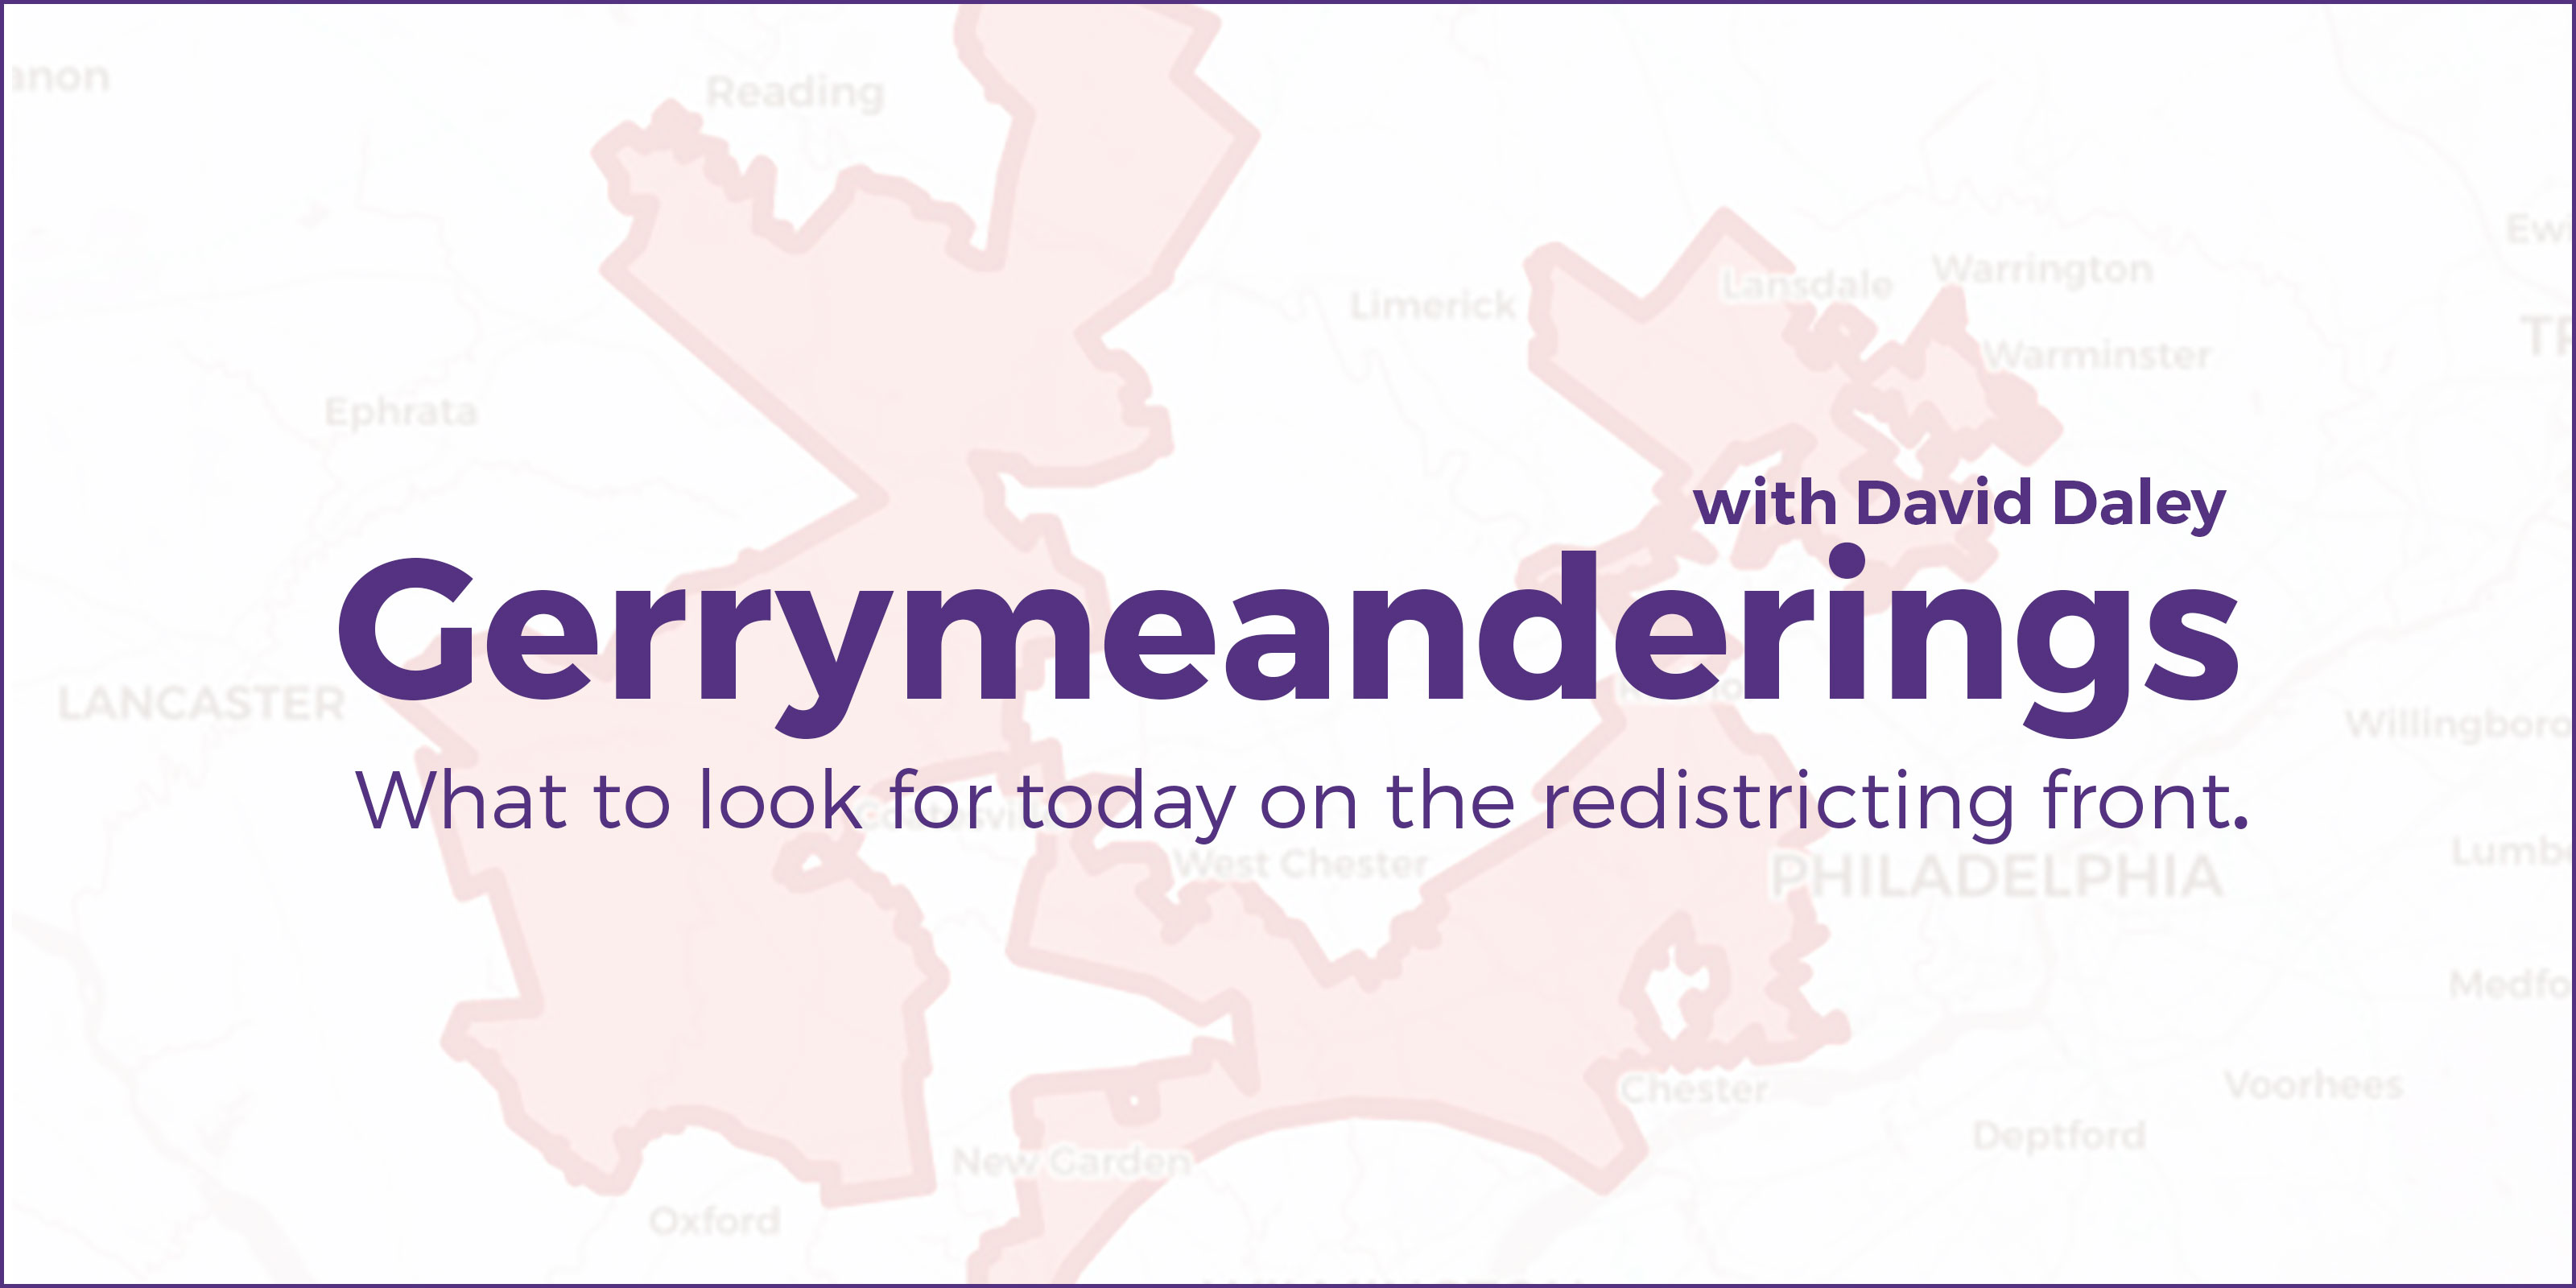 This is how we end gerrymandering